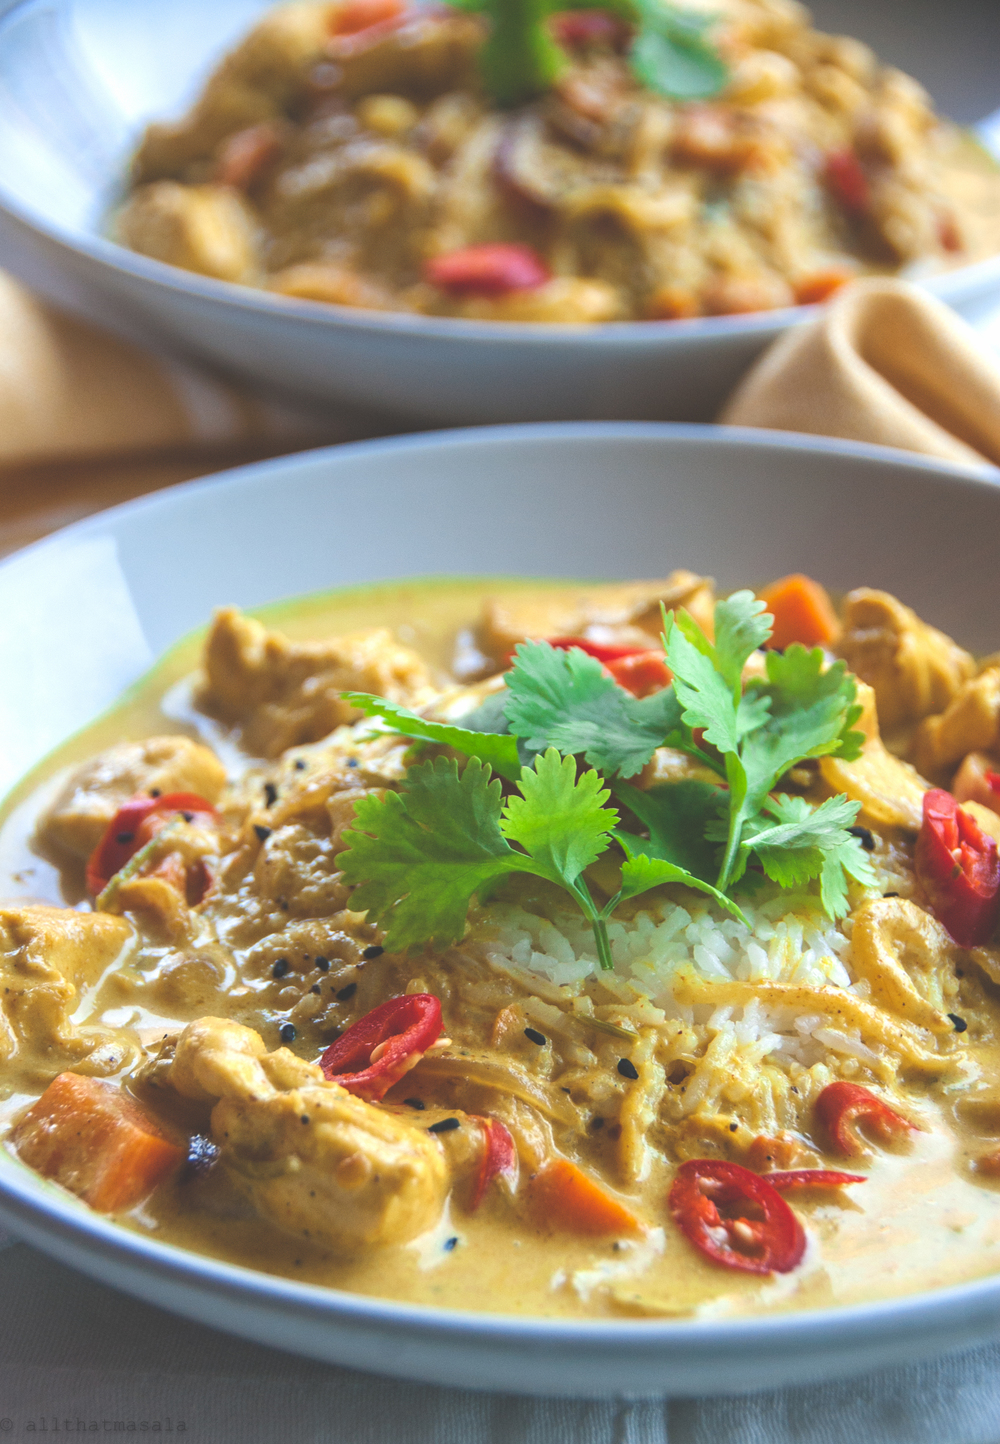 I believe that a good spicy Thai yellow curry possesses the fix to all troubles. I am in love with the Surendra's curry at Wagamama, a Japanese fast food restaurant with amazing South Asian recipes, from Ramens to Curries. This recipe got me a few inches closer to the Surendra's curry and took me only 20 minutes to stir together.